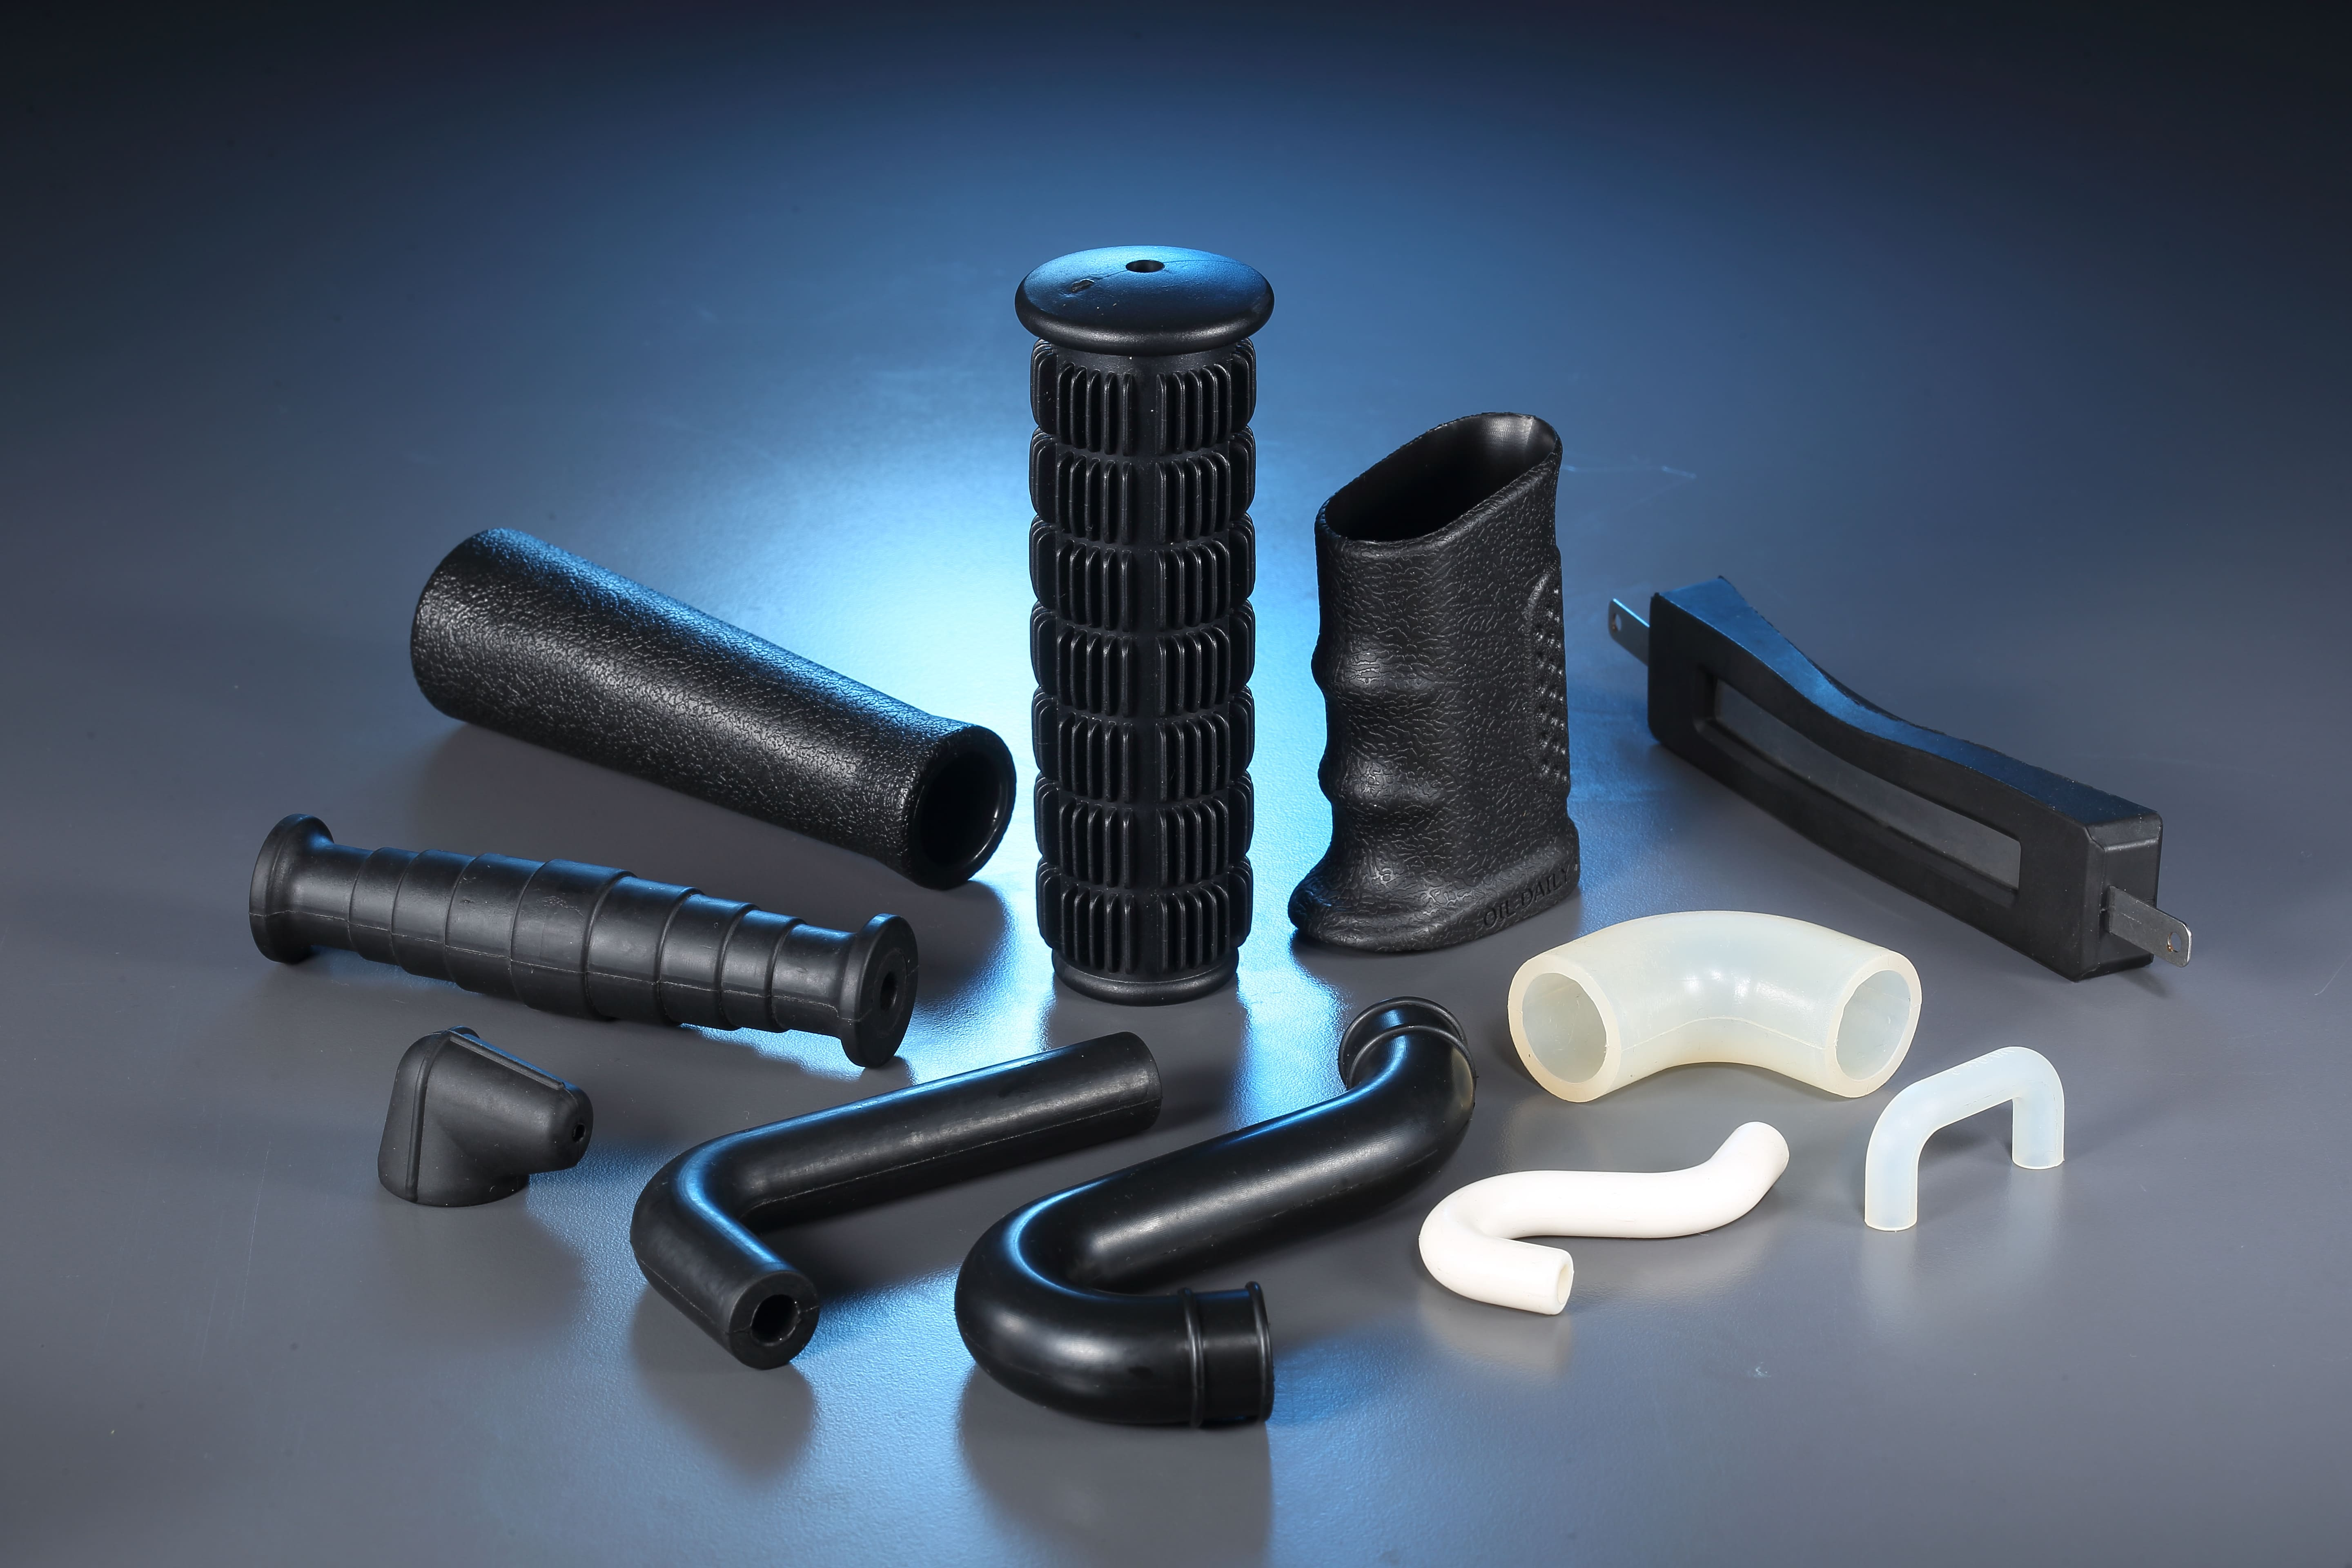 Truck / Trailer / Heavy Duty Robber elbow pipe for Rubber, Plastic Parts made by Yee Ming Ying Co., LTD. 昱銘穎有限公司 - MatchSupplier.com